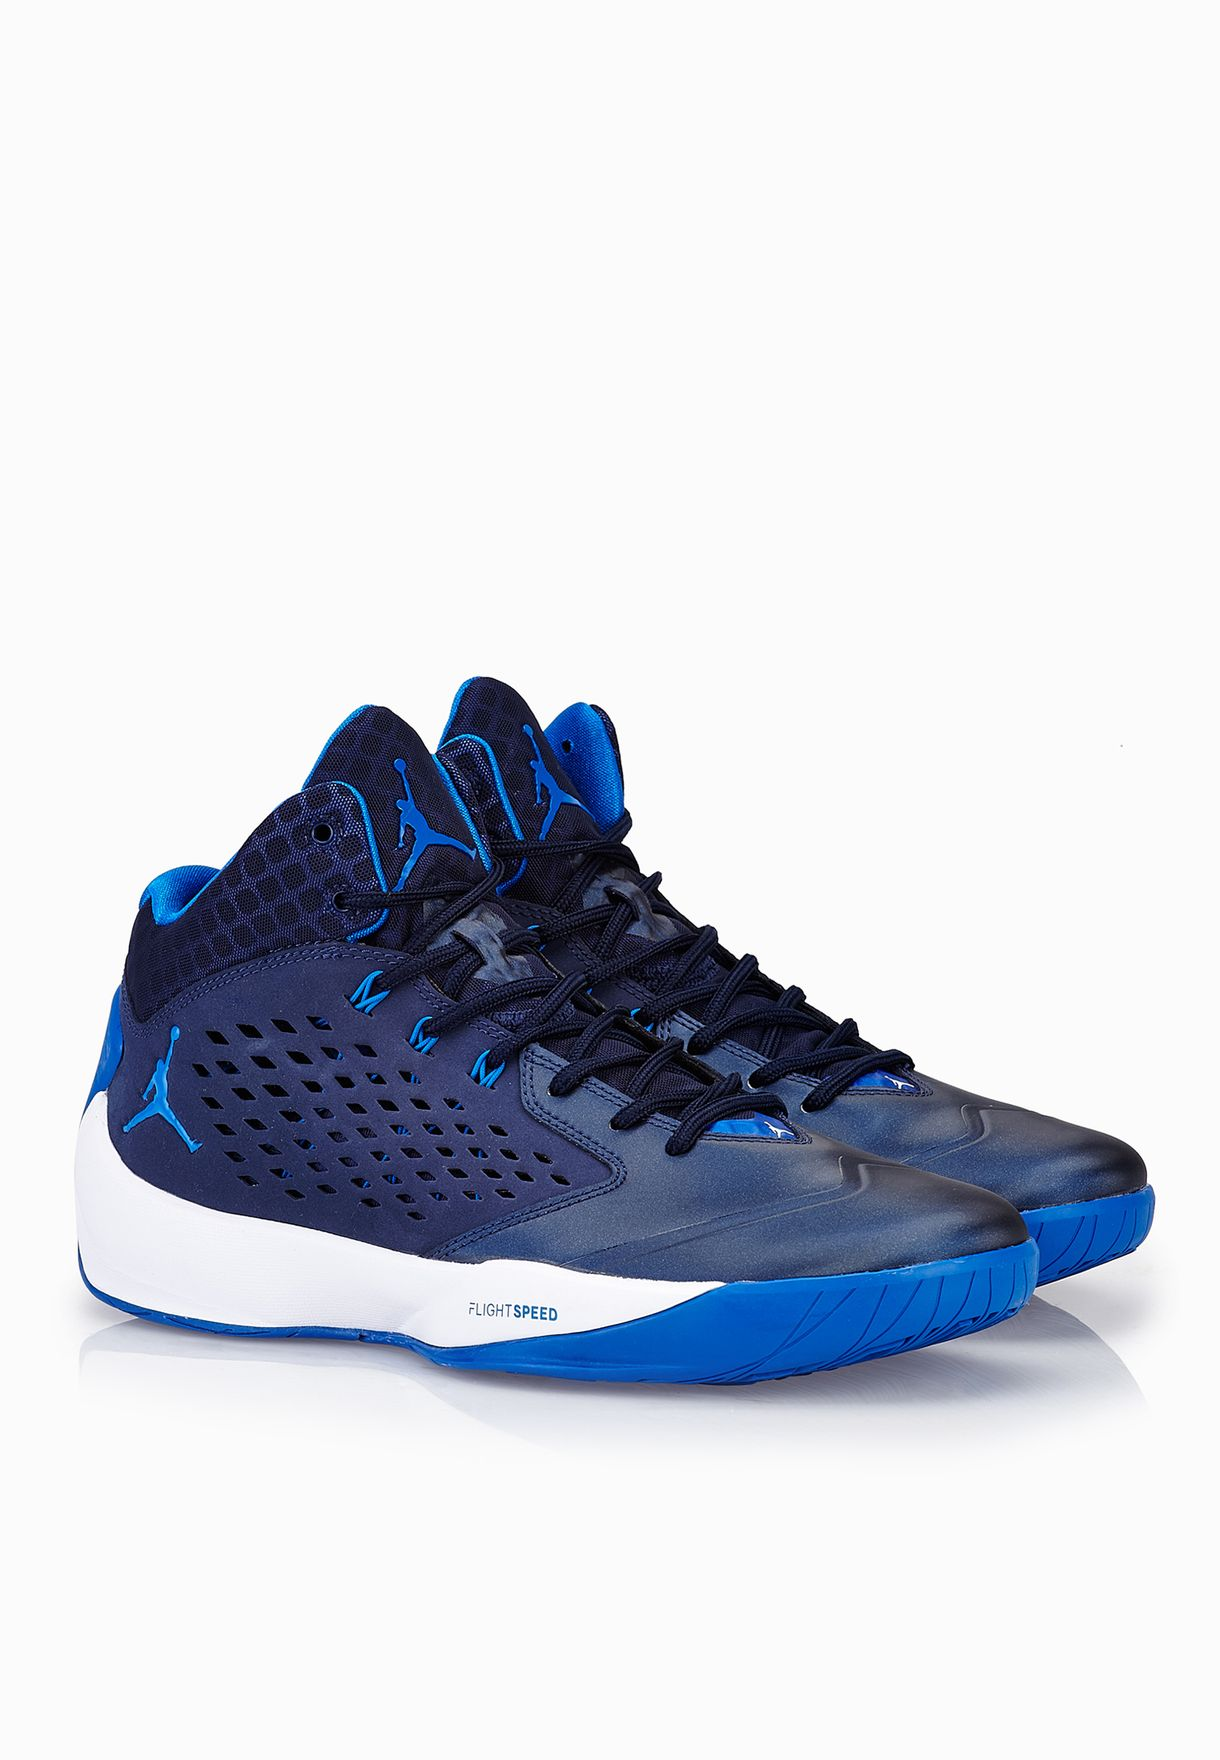 bdb5c659a1e7c4 Shop Nike blue Jordan Rising High 768931-402 for Men in Saudi ...